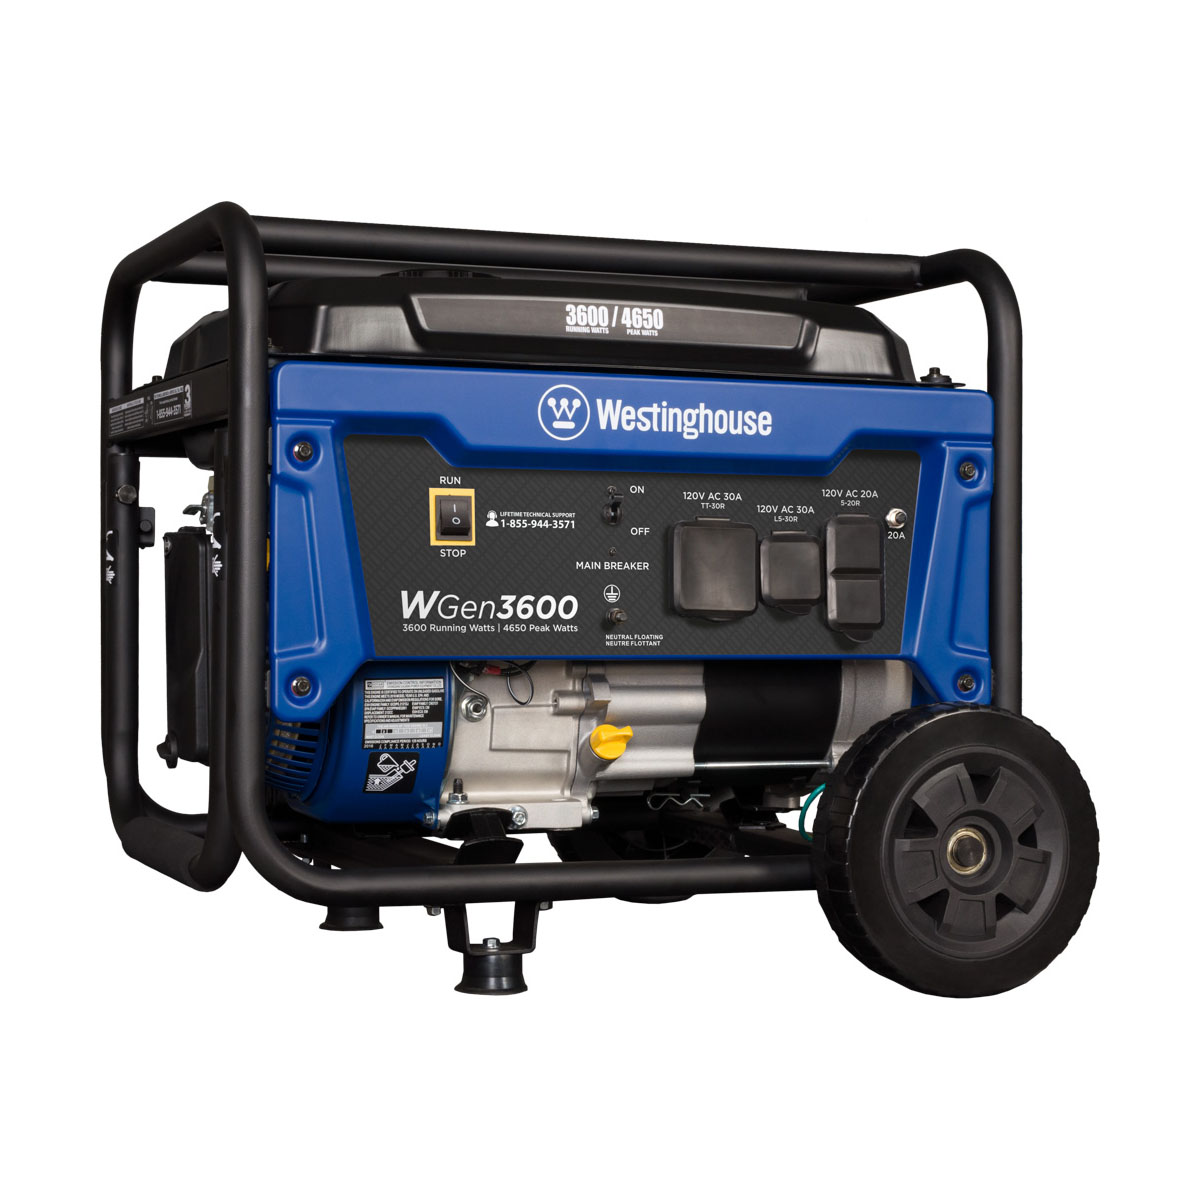 Westinghouse WGen3600 Gas Powered Portable Generator